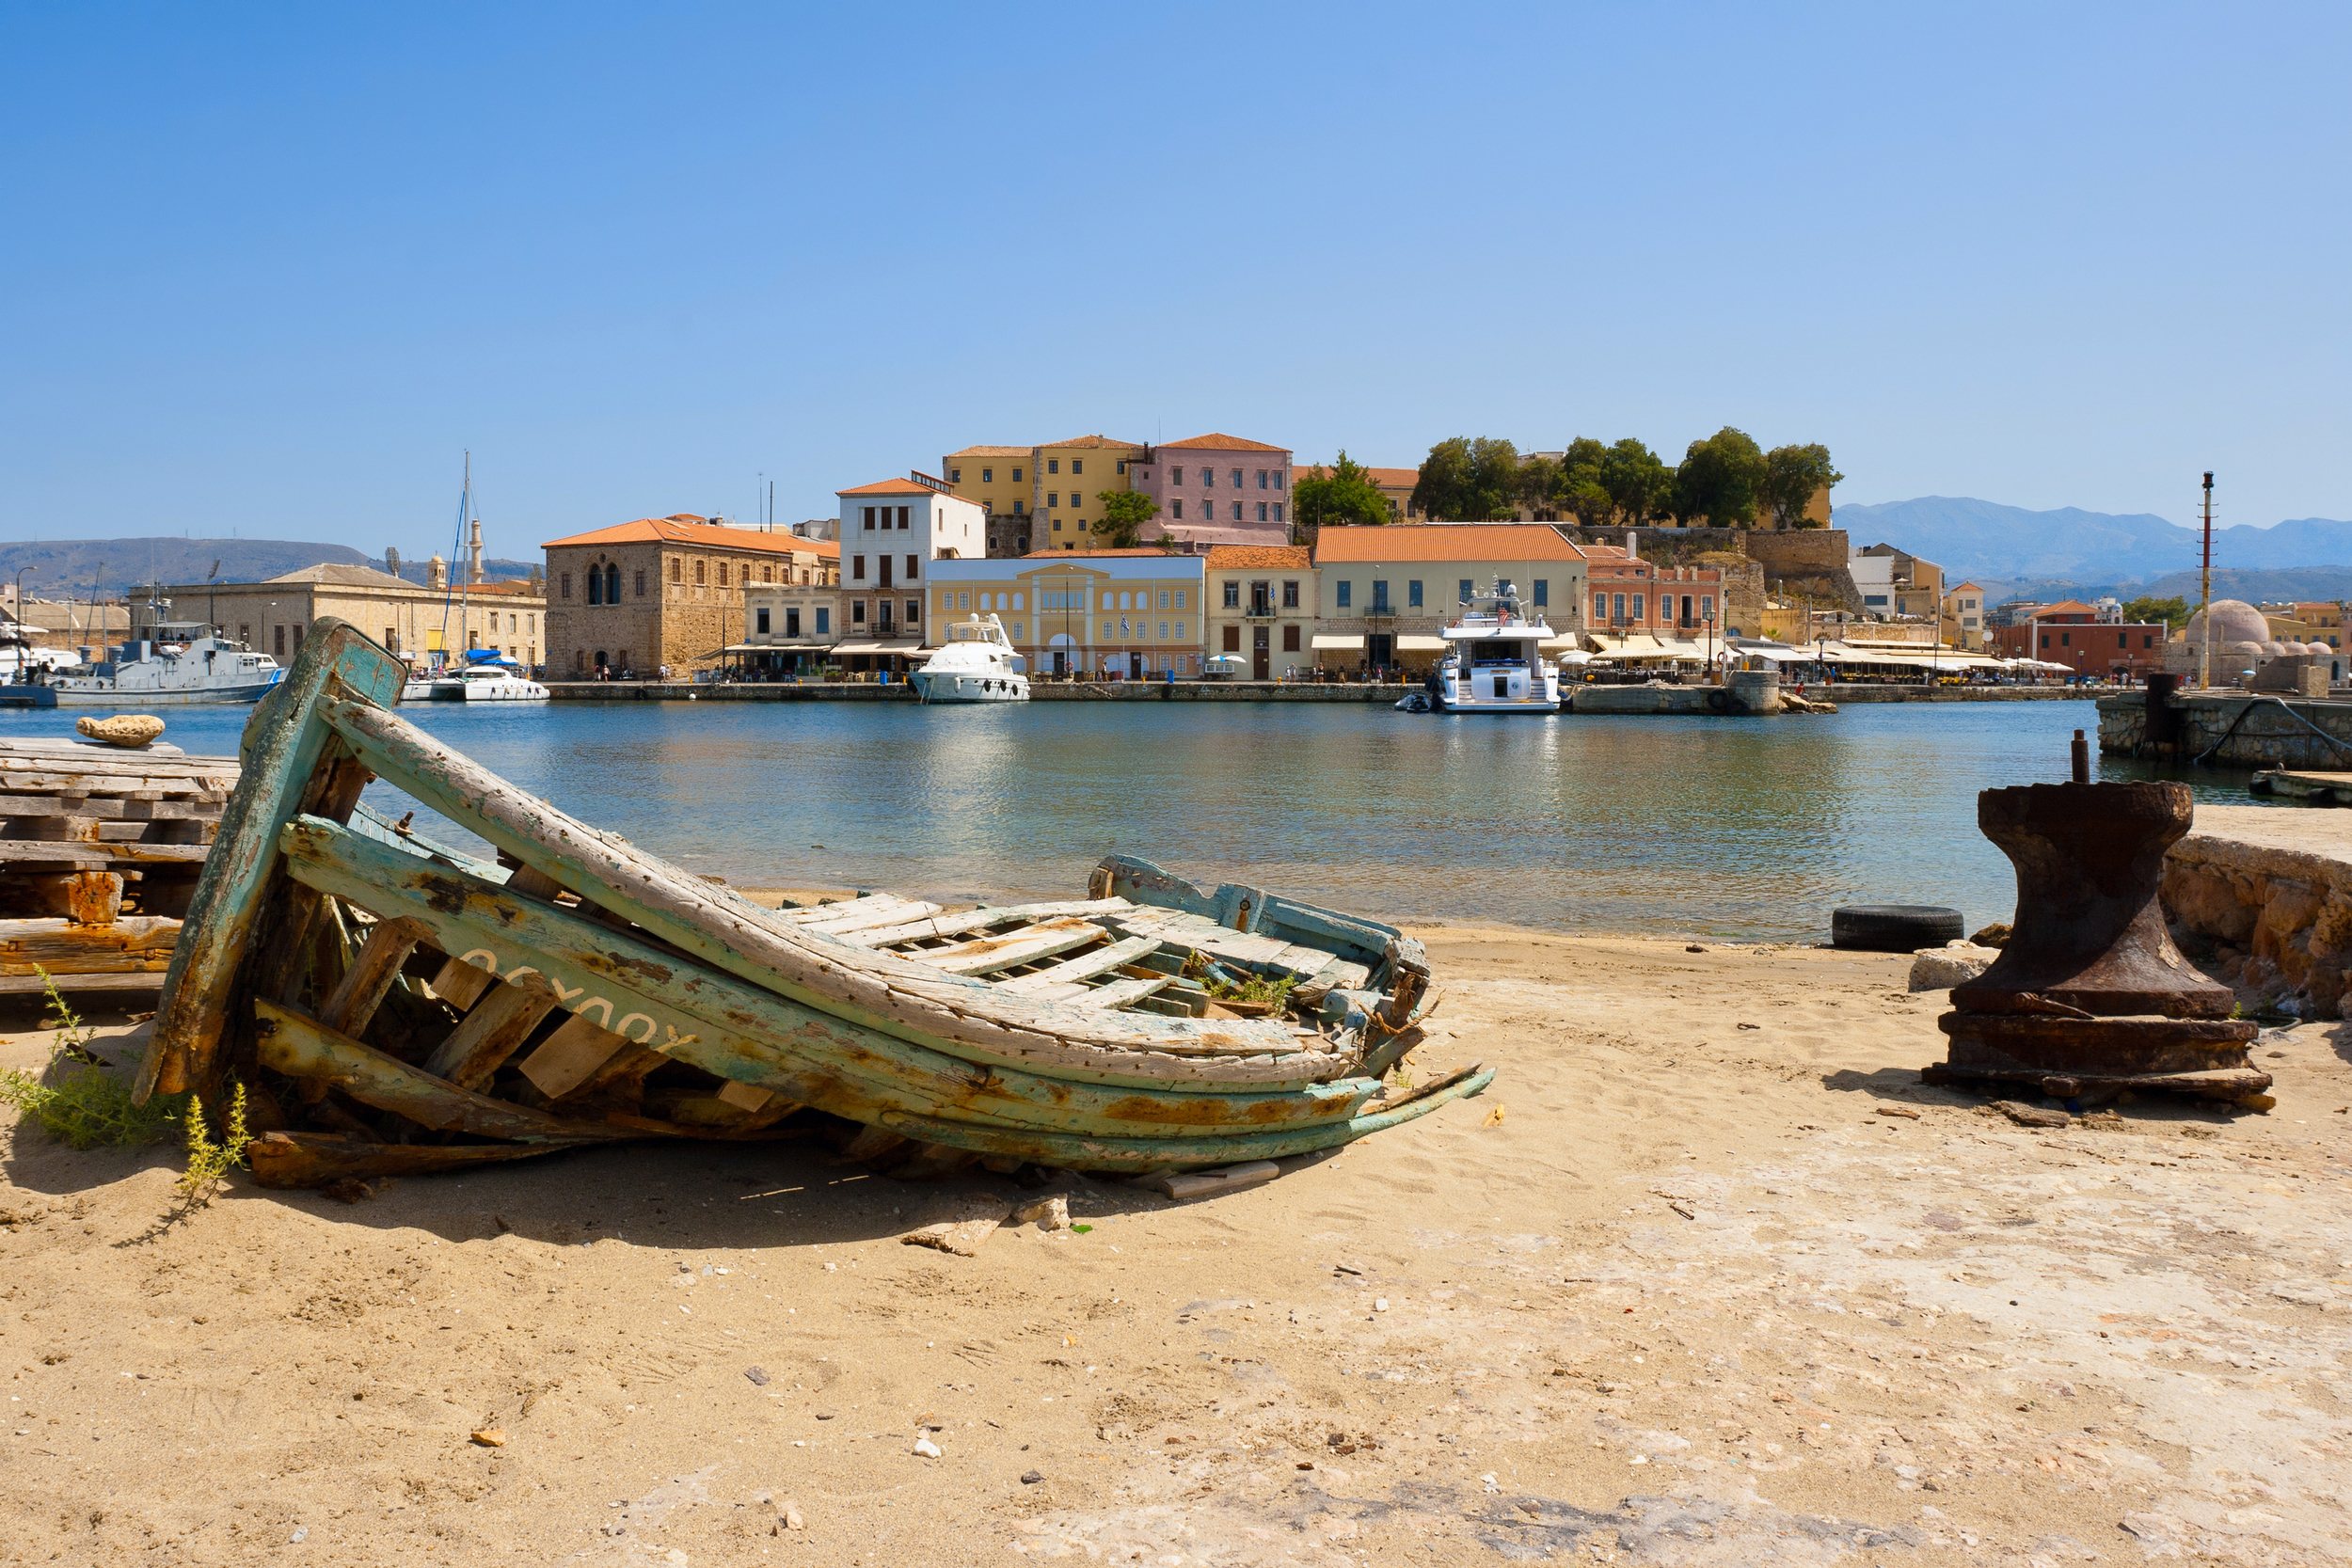 bigstock-Chania-Crete-Greece-40144963.jpg